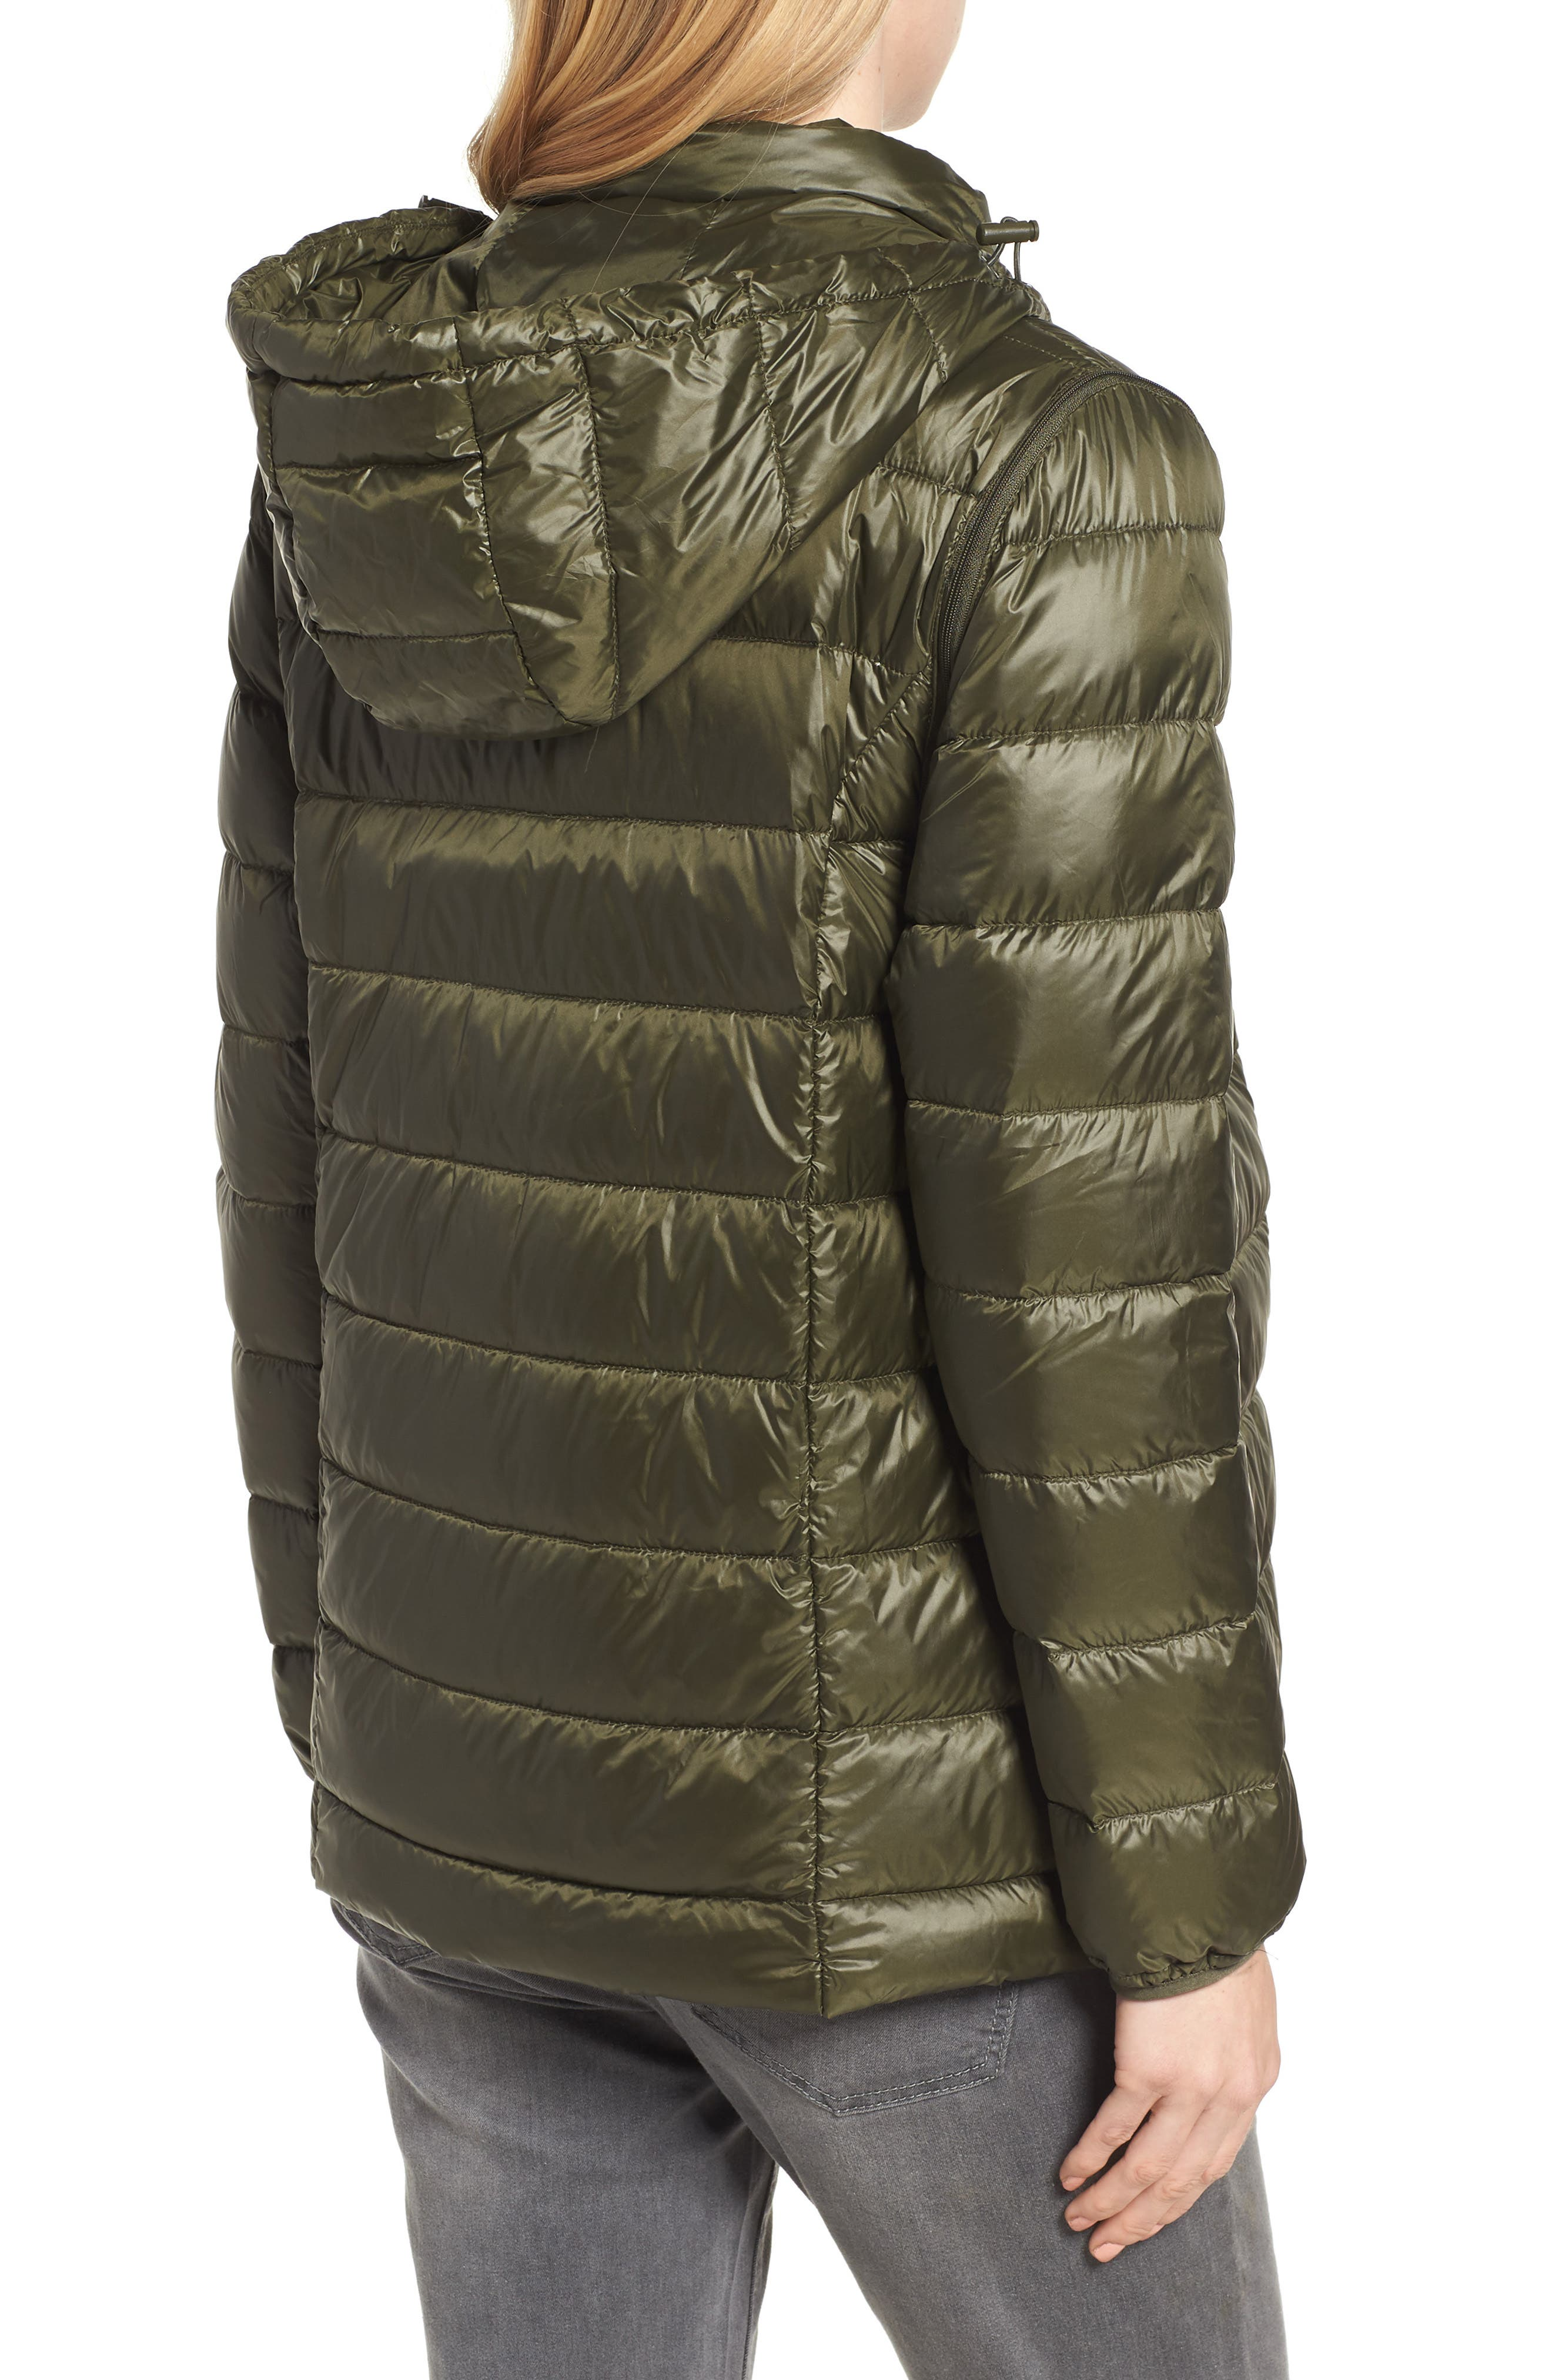 Lightweight Puffer Convertible 3-in-1 Maternity Jacket,                             Alternate thumbnail 4, color,                             Khaki Green